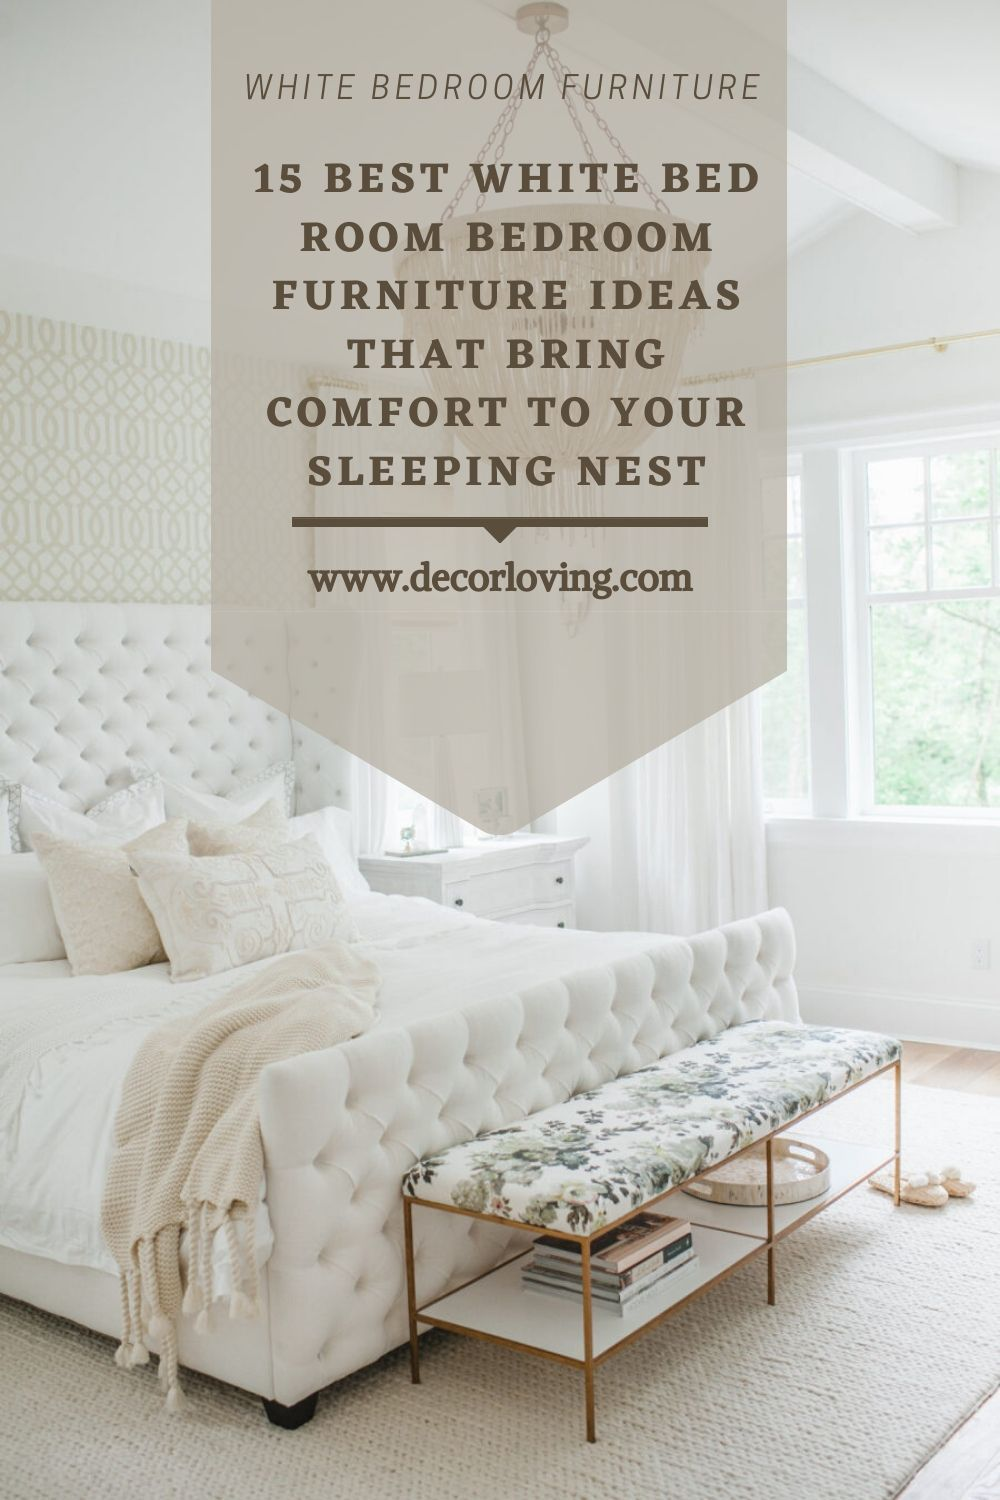 15 Best White Bed Room Bedroom Furniture Ideas That Bring